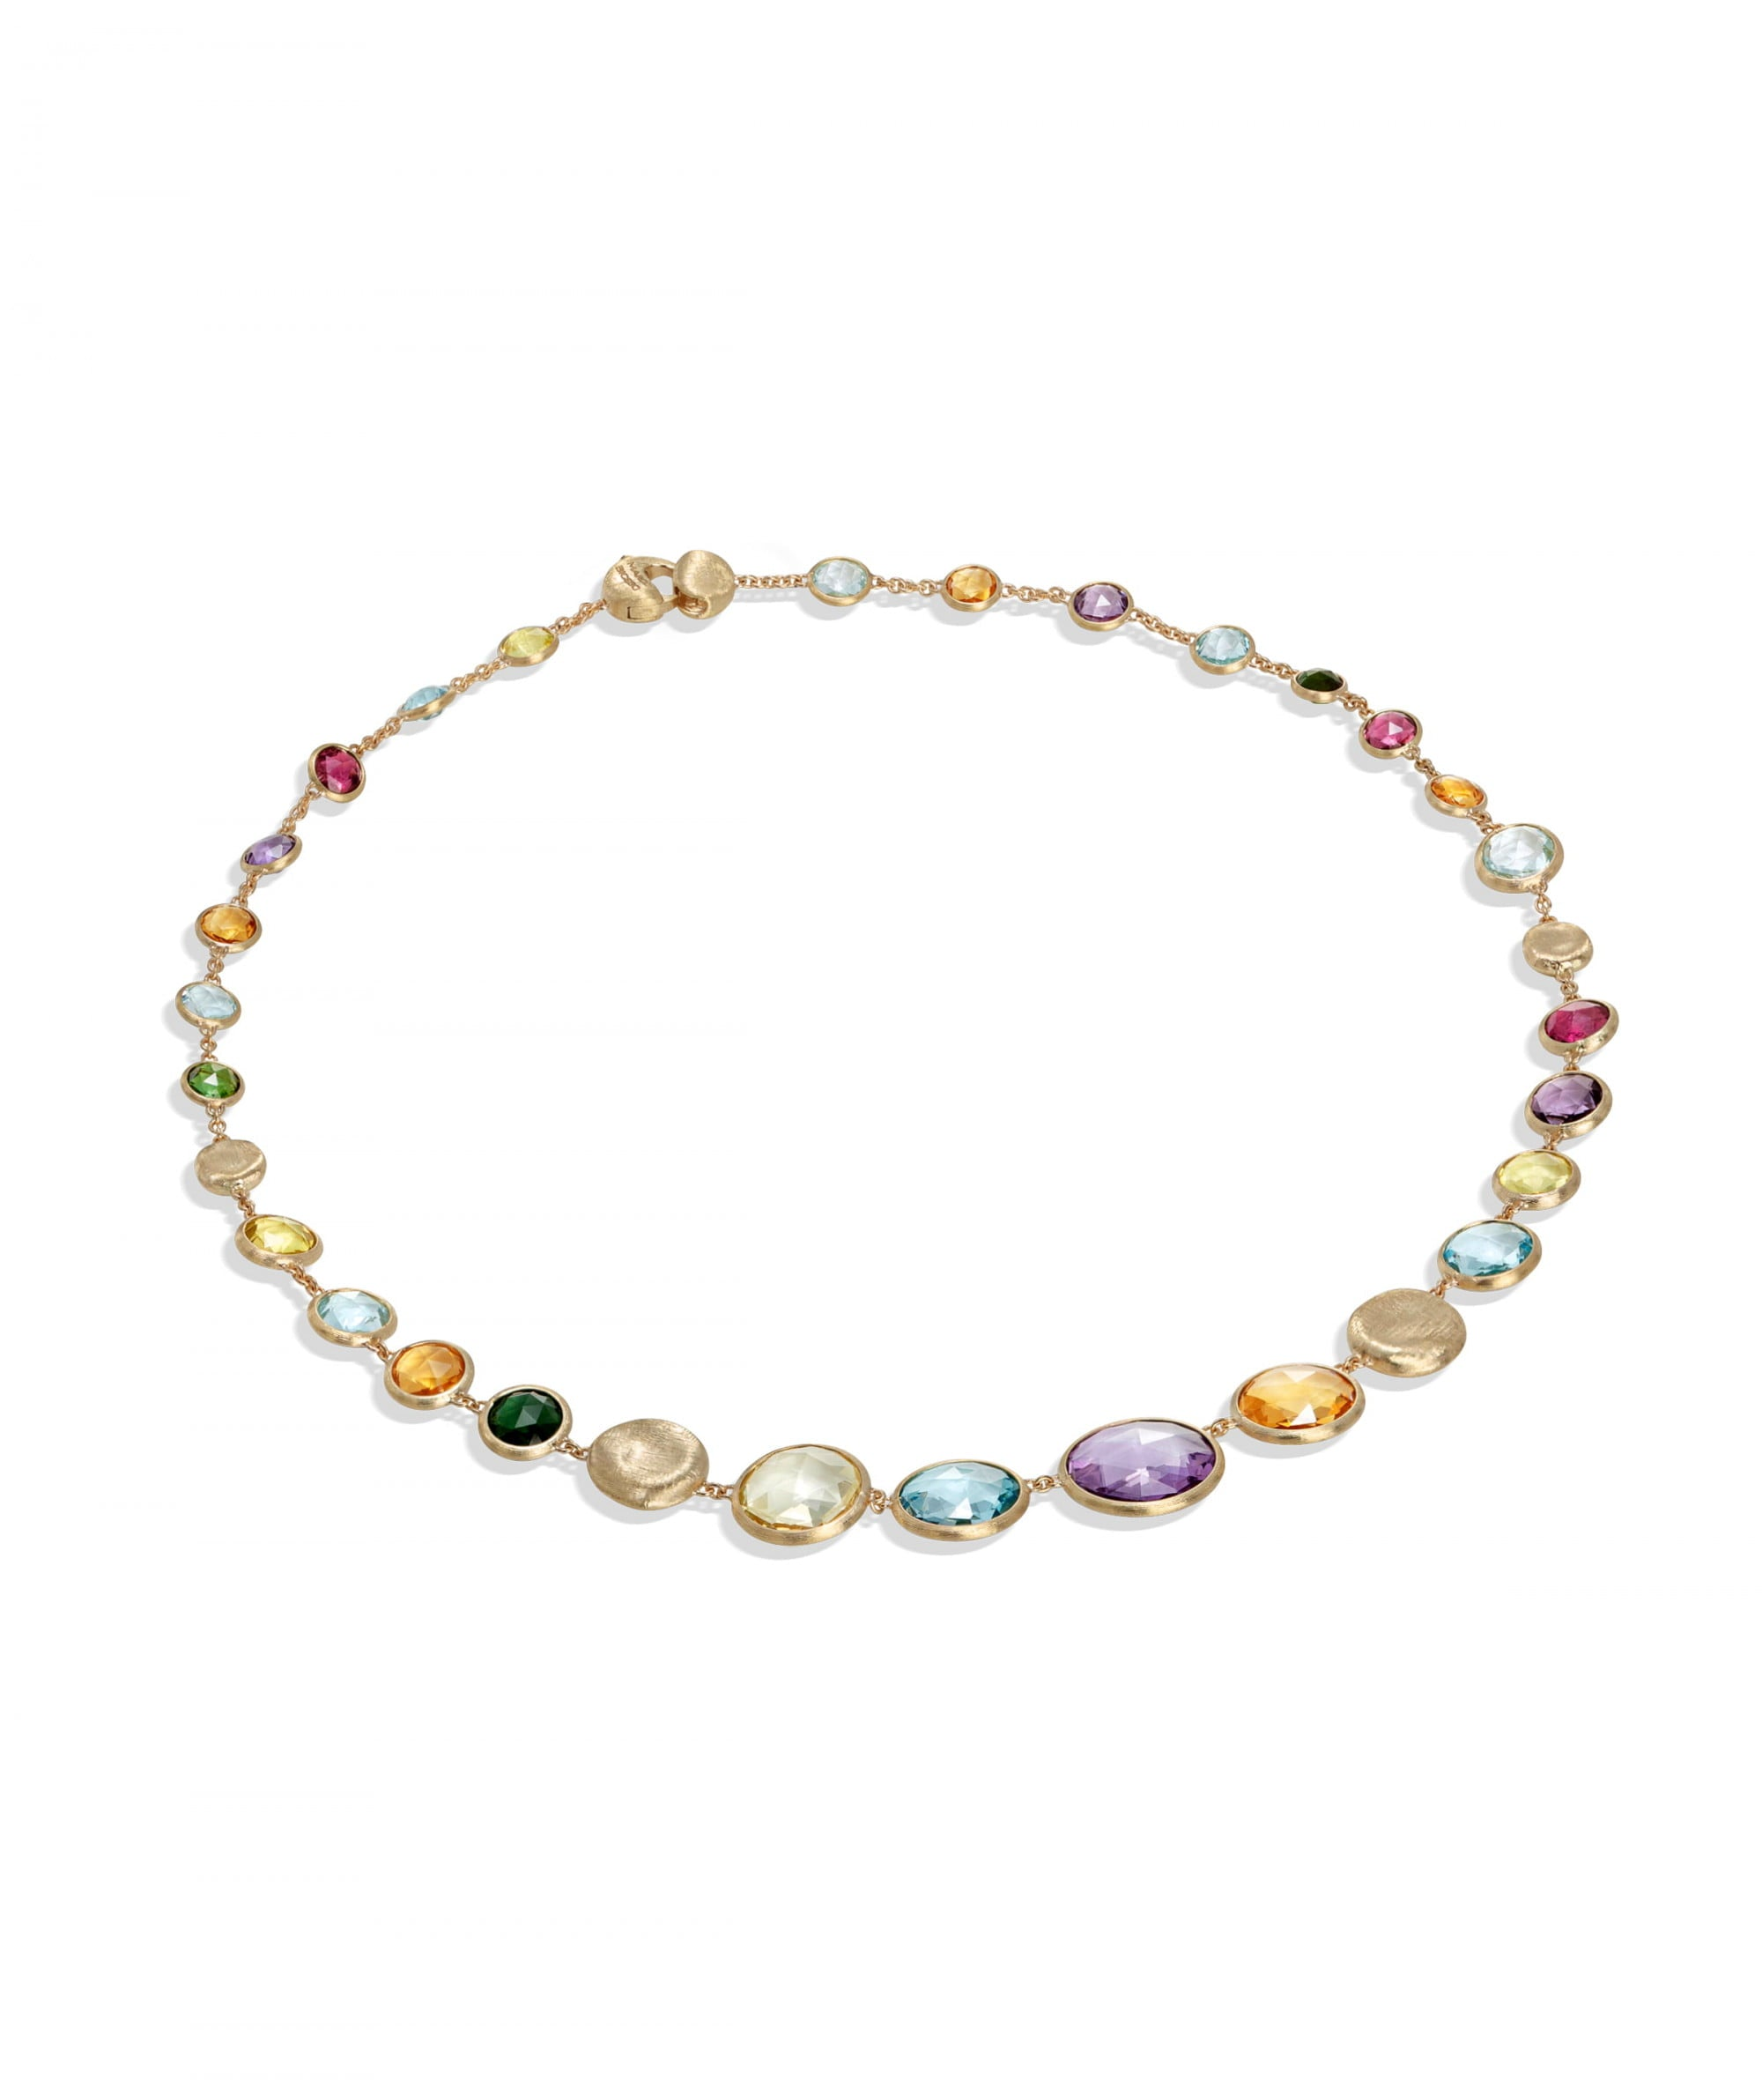 Jaipur Colour Necklace in 18k Yellow Gold with Gemstones Short - Orsini Jewellers NZ